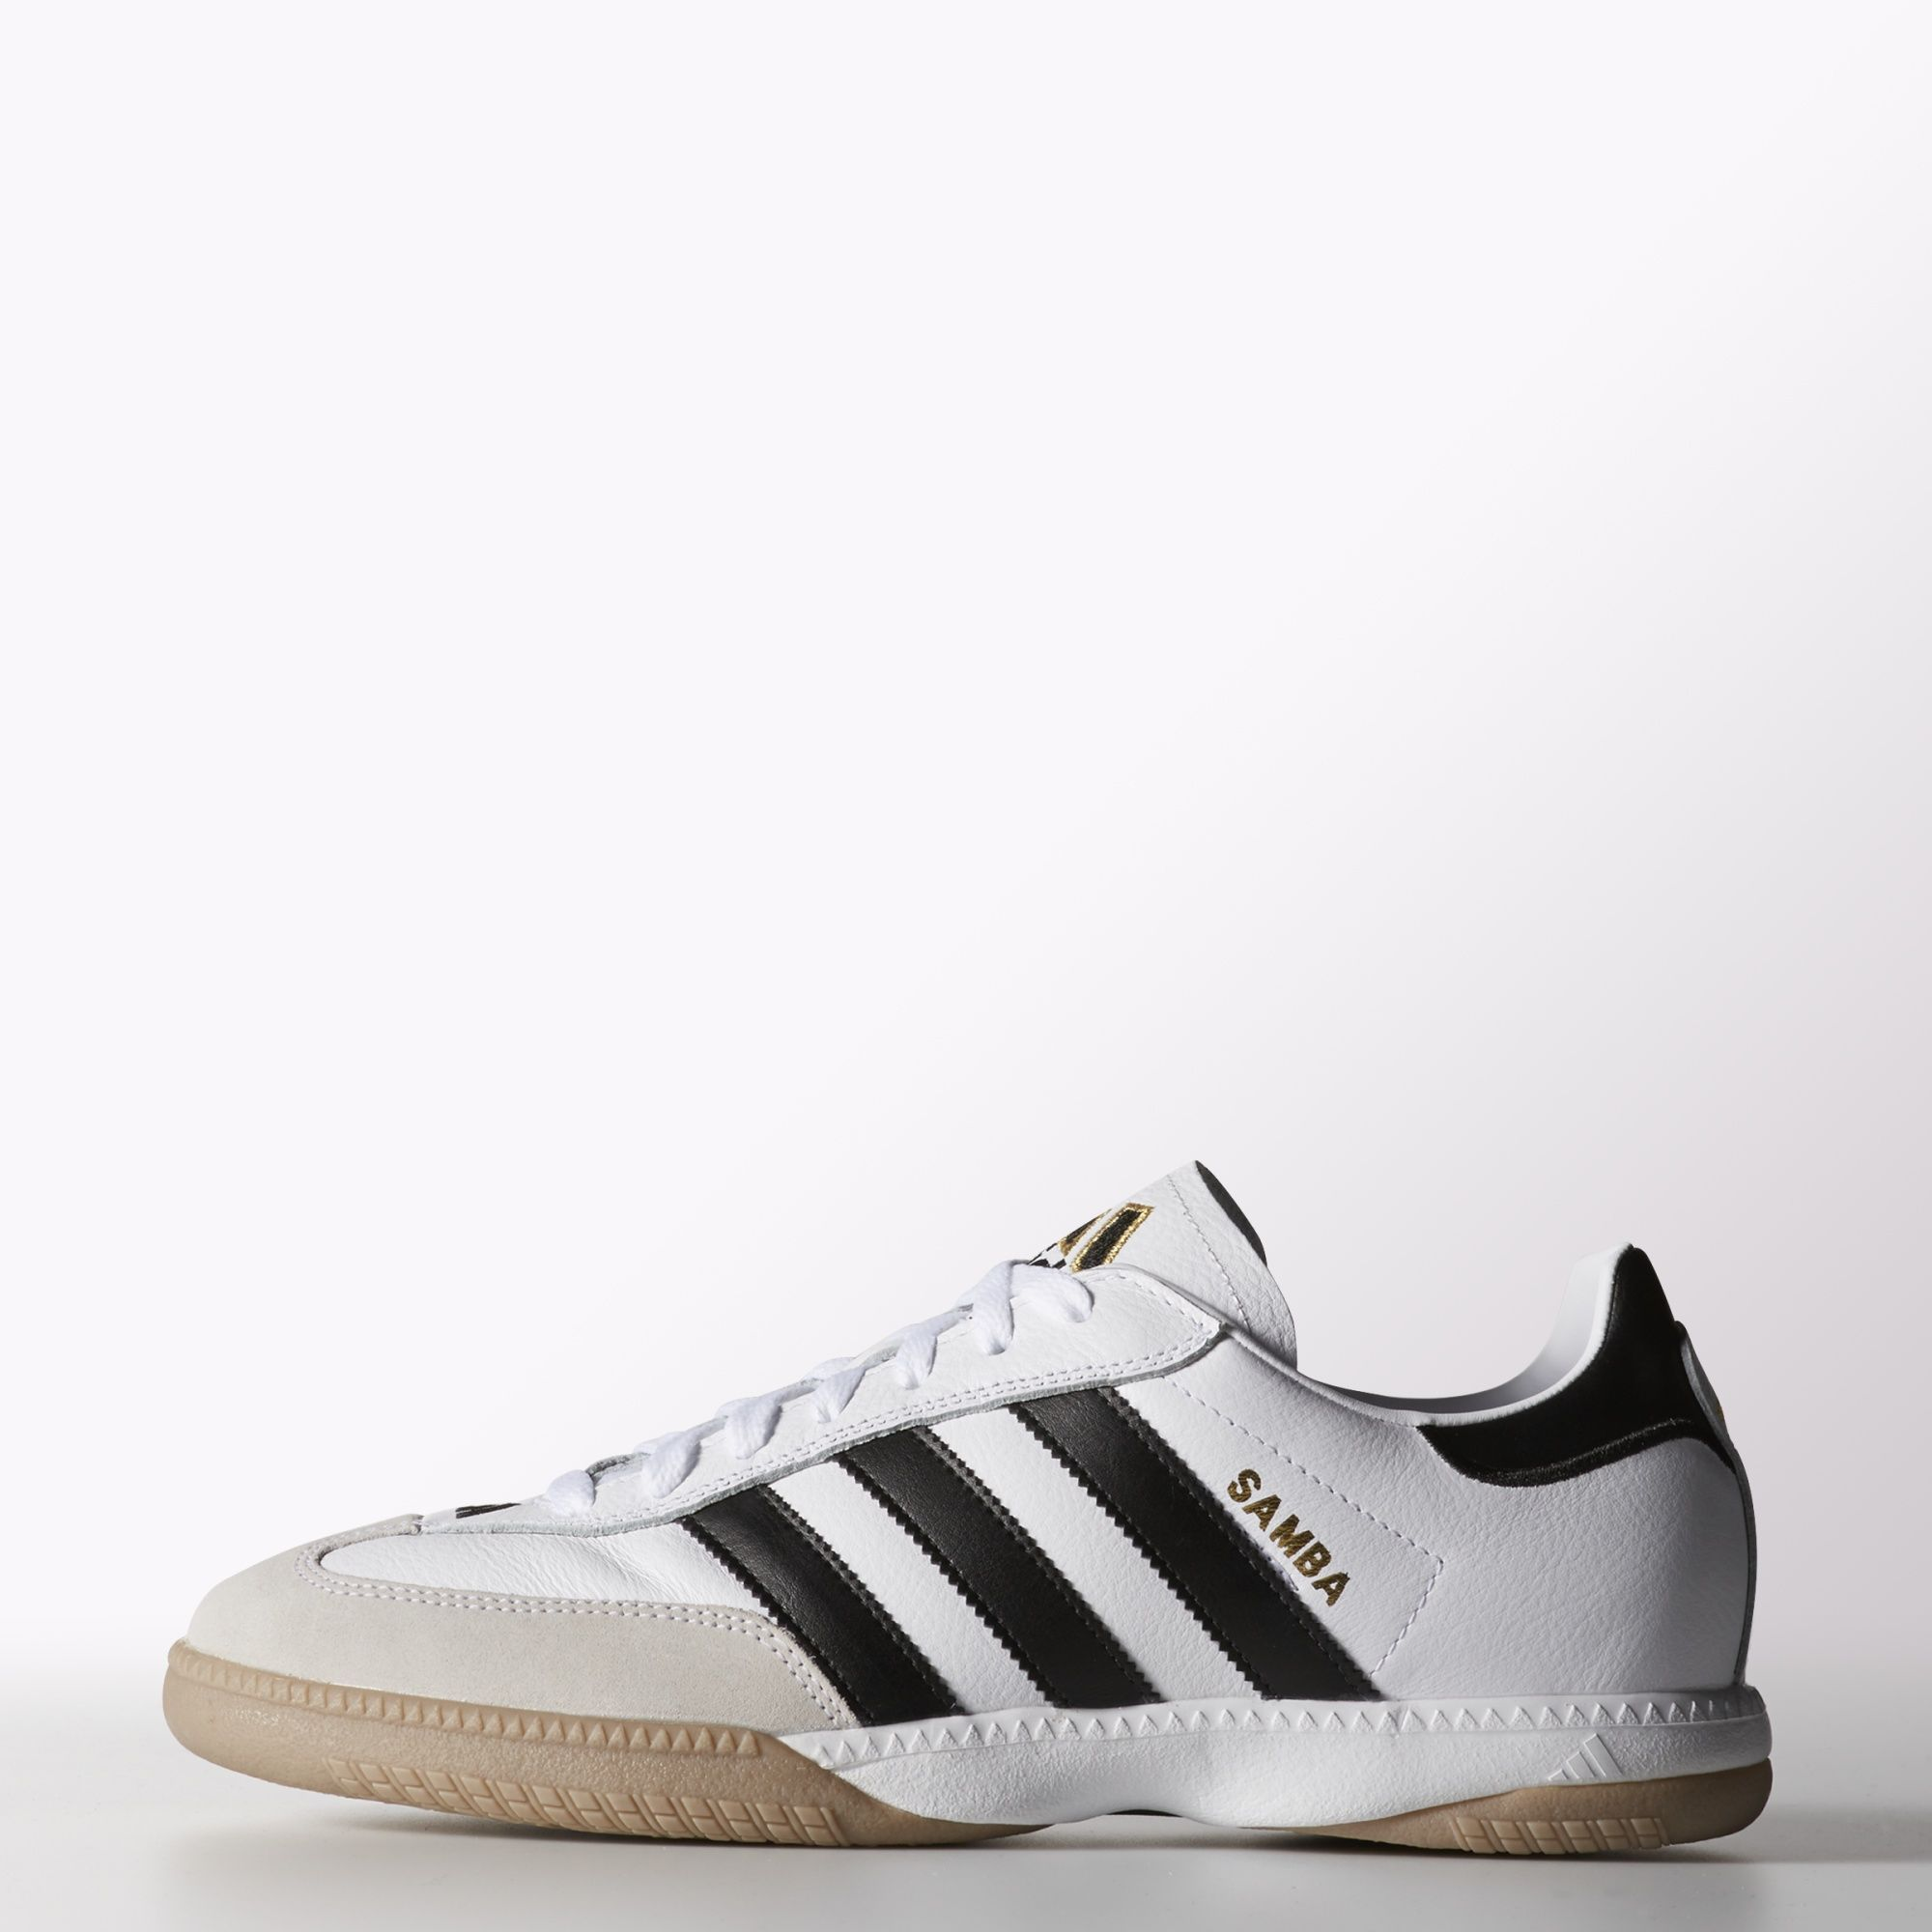 adidas - Samba Millennium Leather IN Shoes